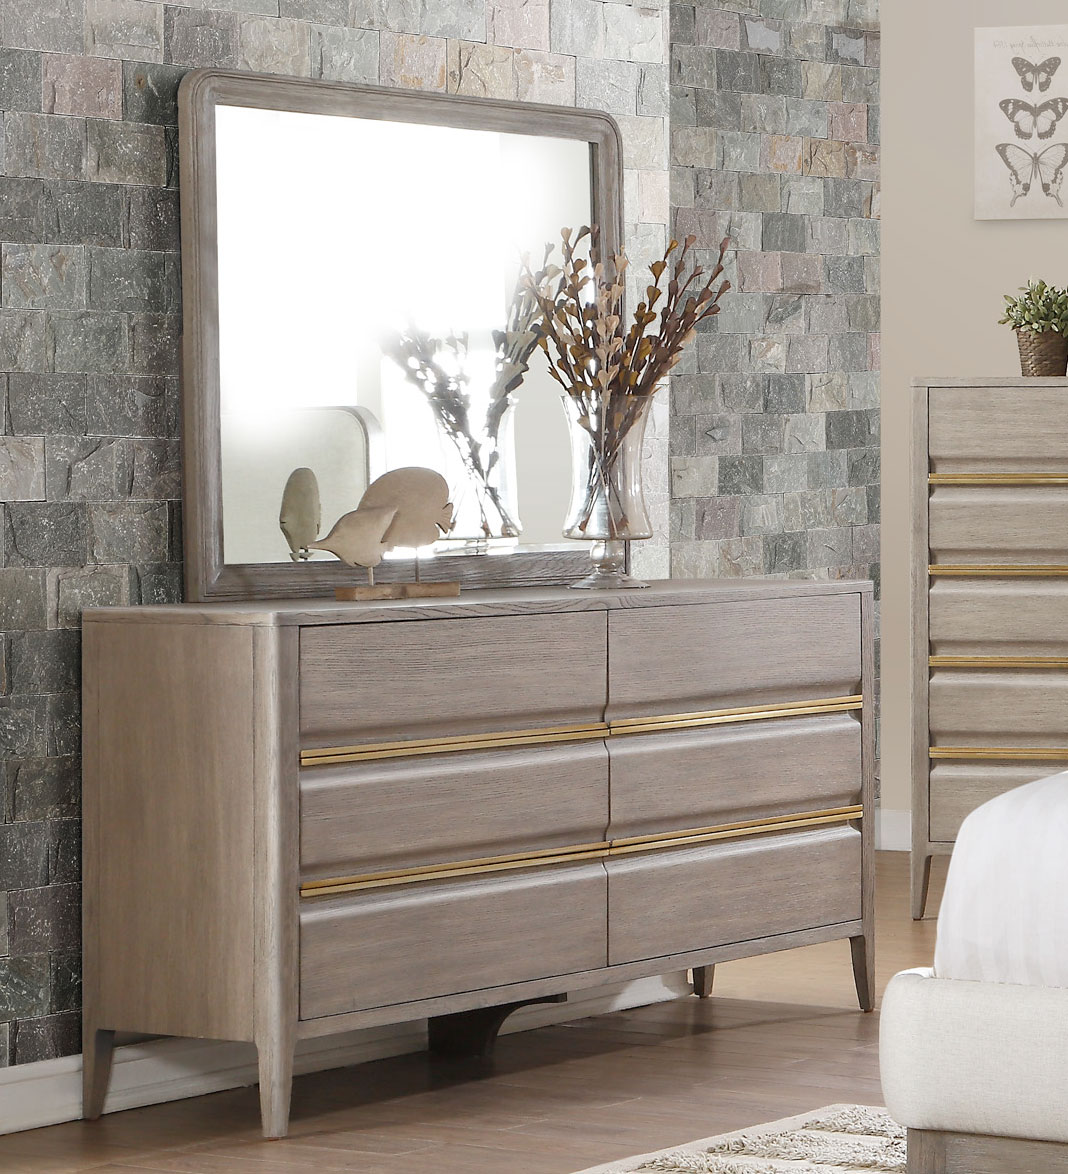 Picture of: Bedroom Distressed Dresser For Sale